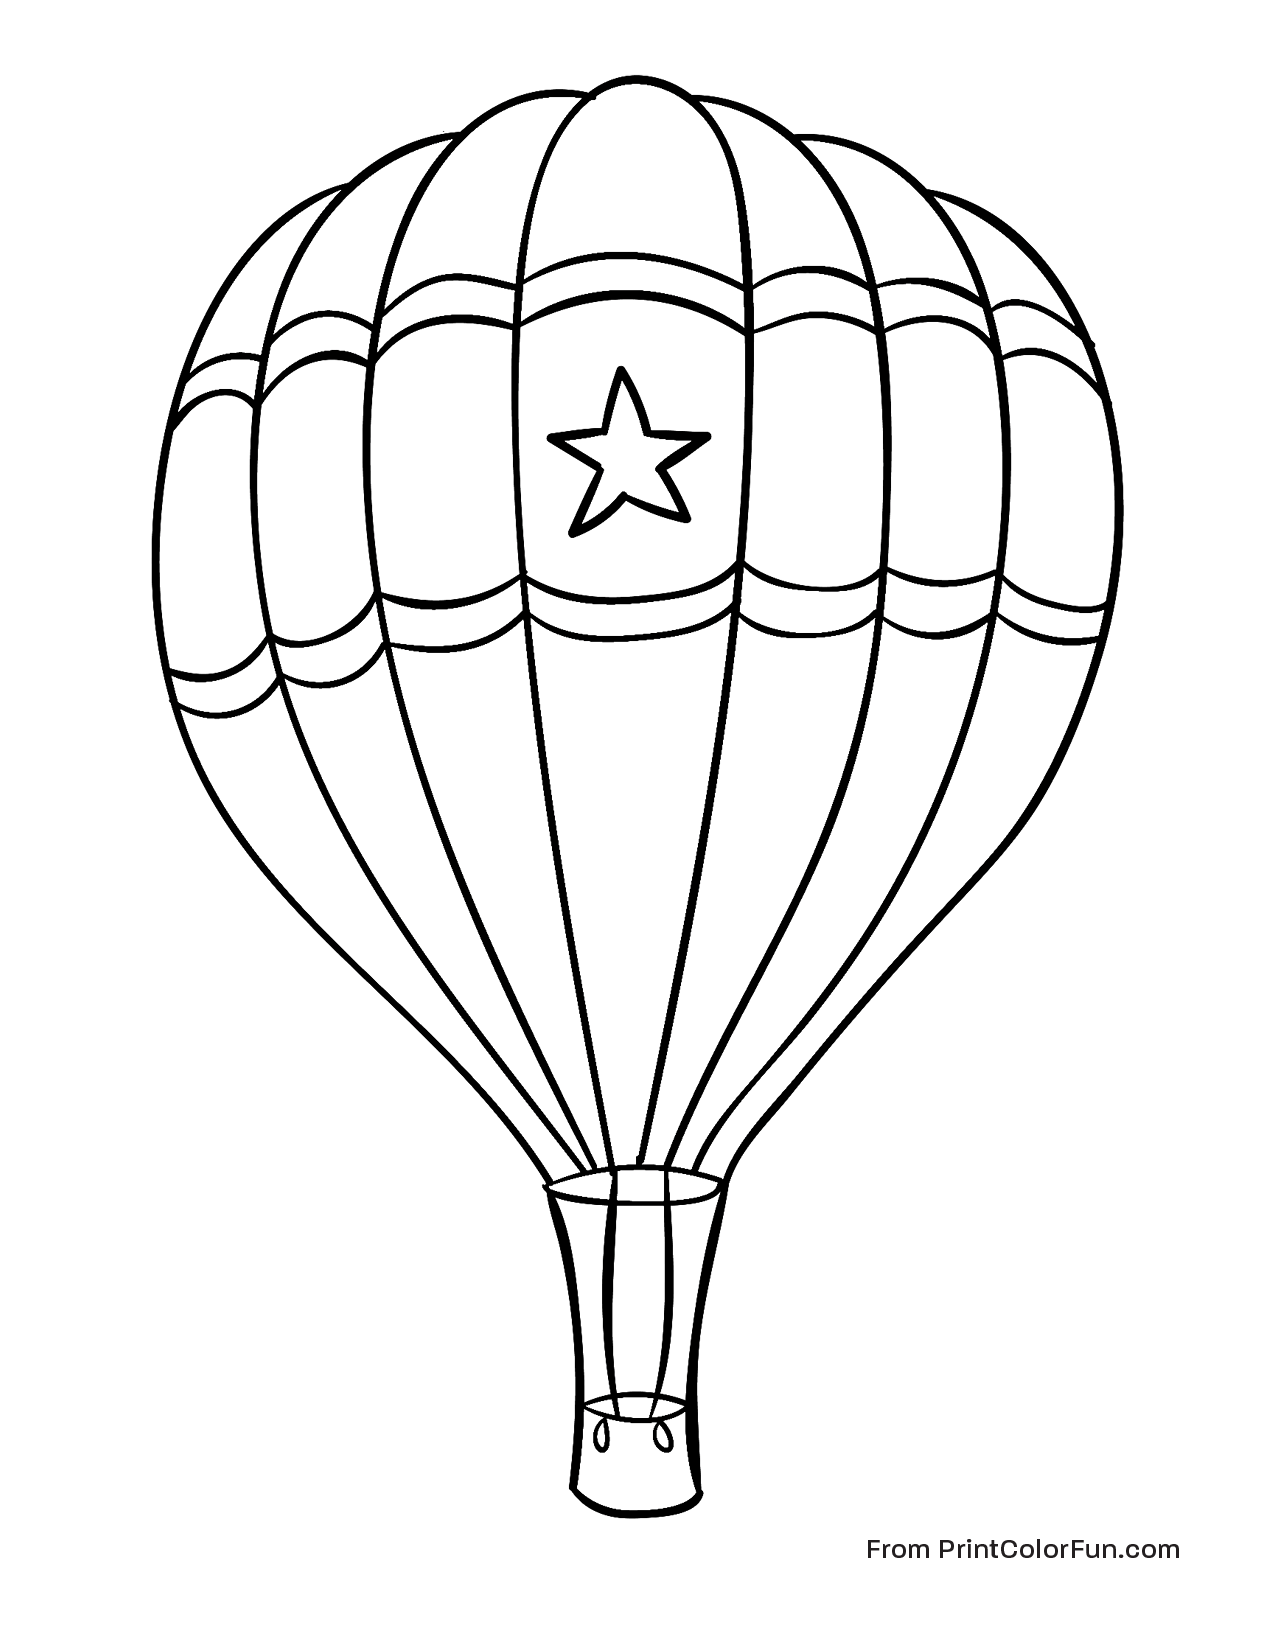 1275x1650 Hot Air Balloon With A Star Coloring Page